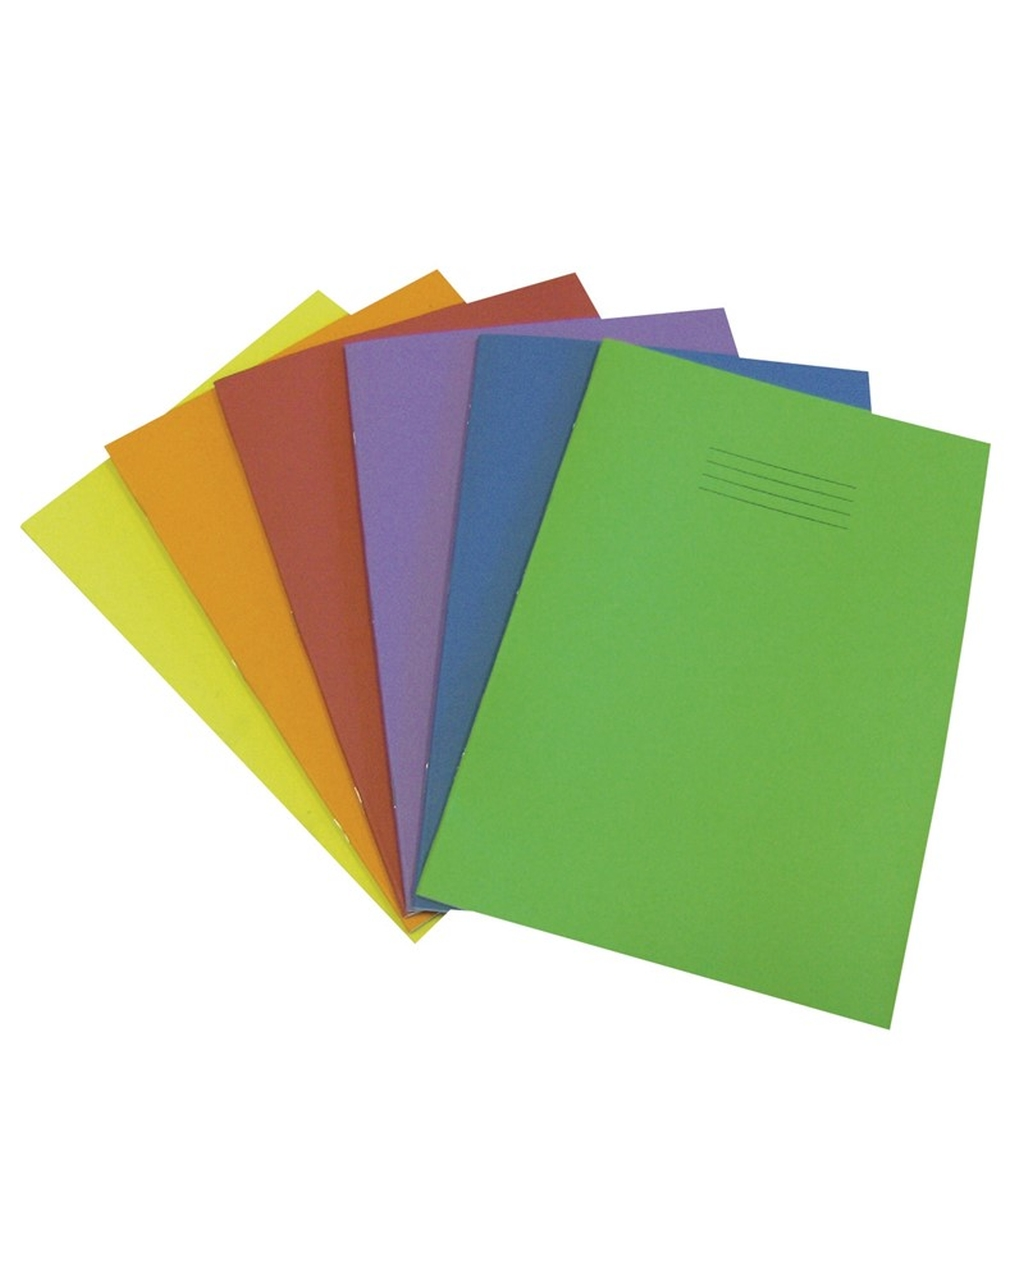 Exercise Book A4 (297 x 210mm) Light Green Cover Half 15mm Ruled & Half Plain 64 Pages